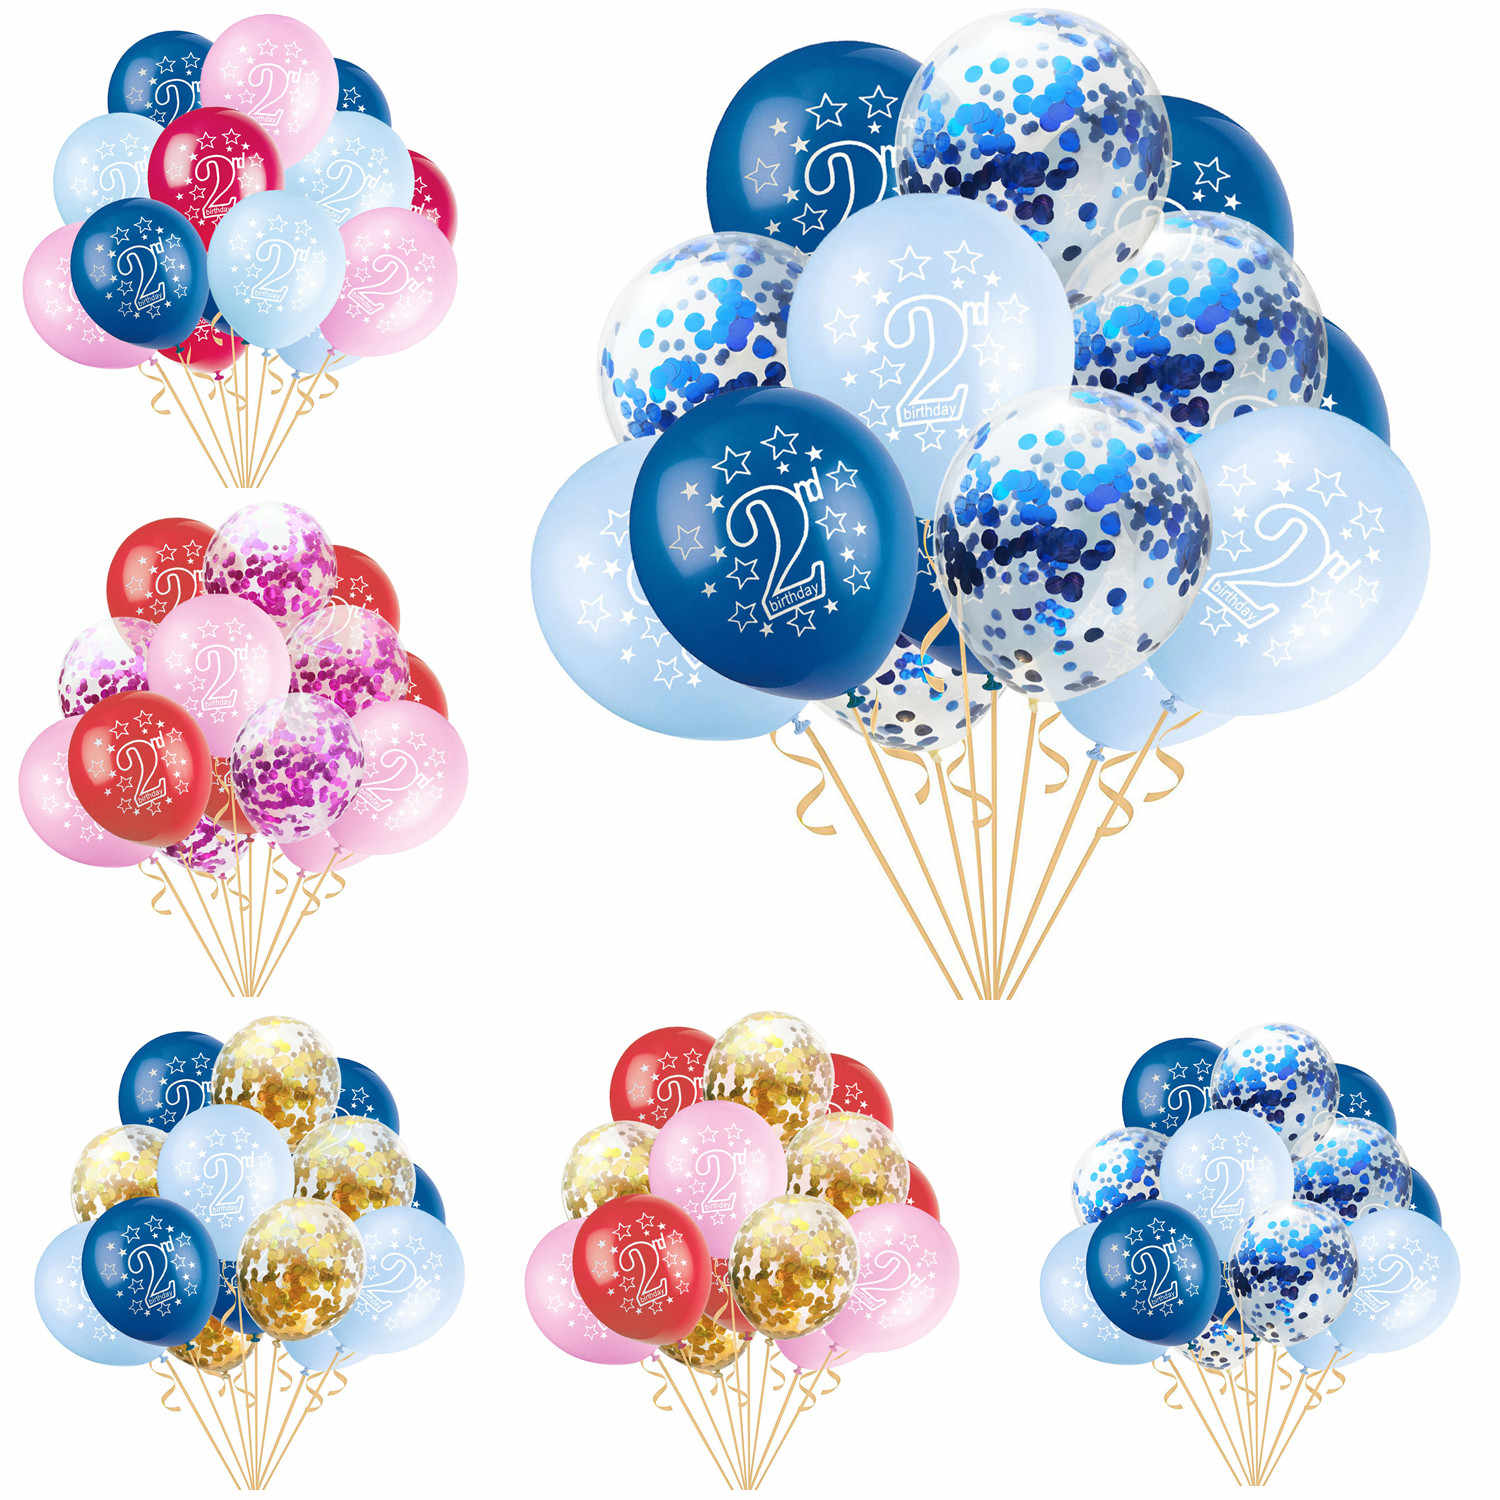 15pcs/set 2nd Stars Pearl Latex Balloons Confetti Air Balloons Baby Boy Girl 2 Years Old Birthday Party Anniversary Decorations